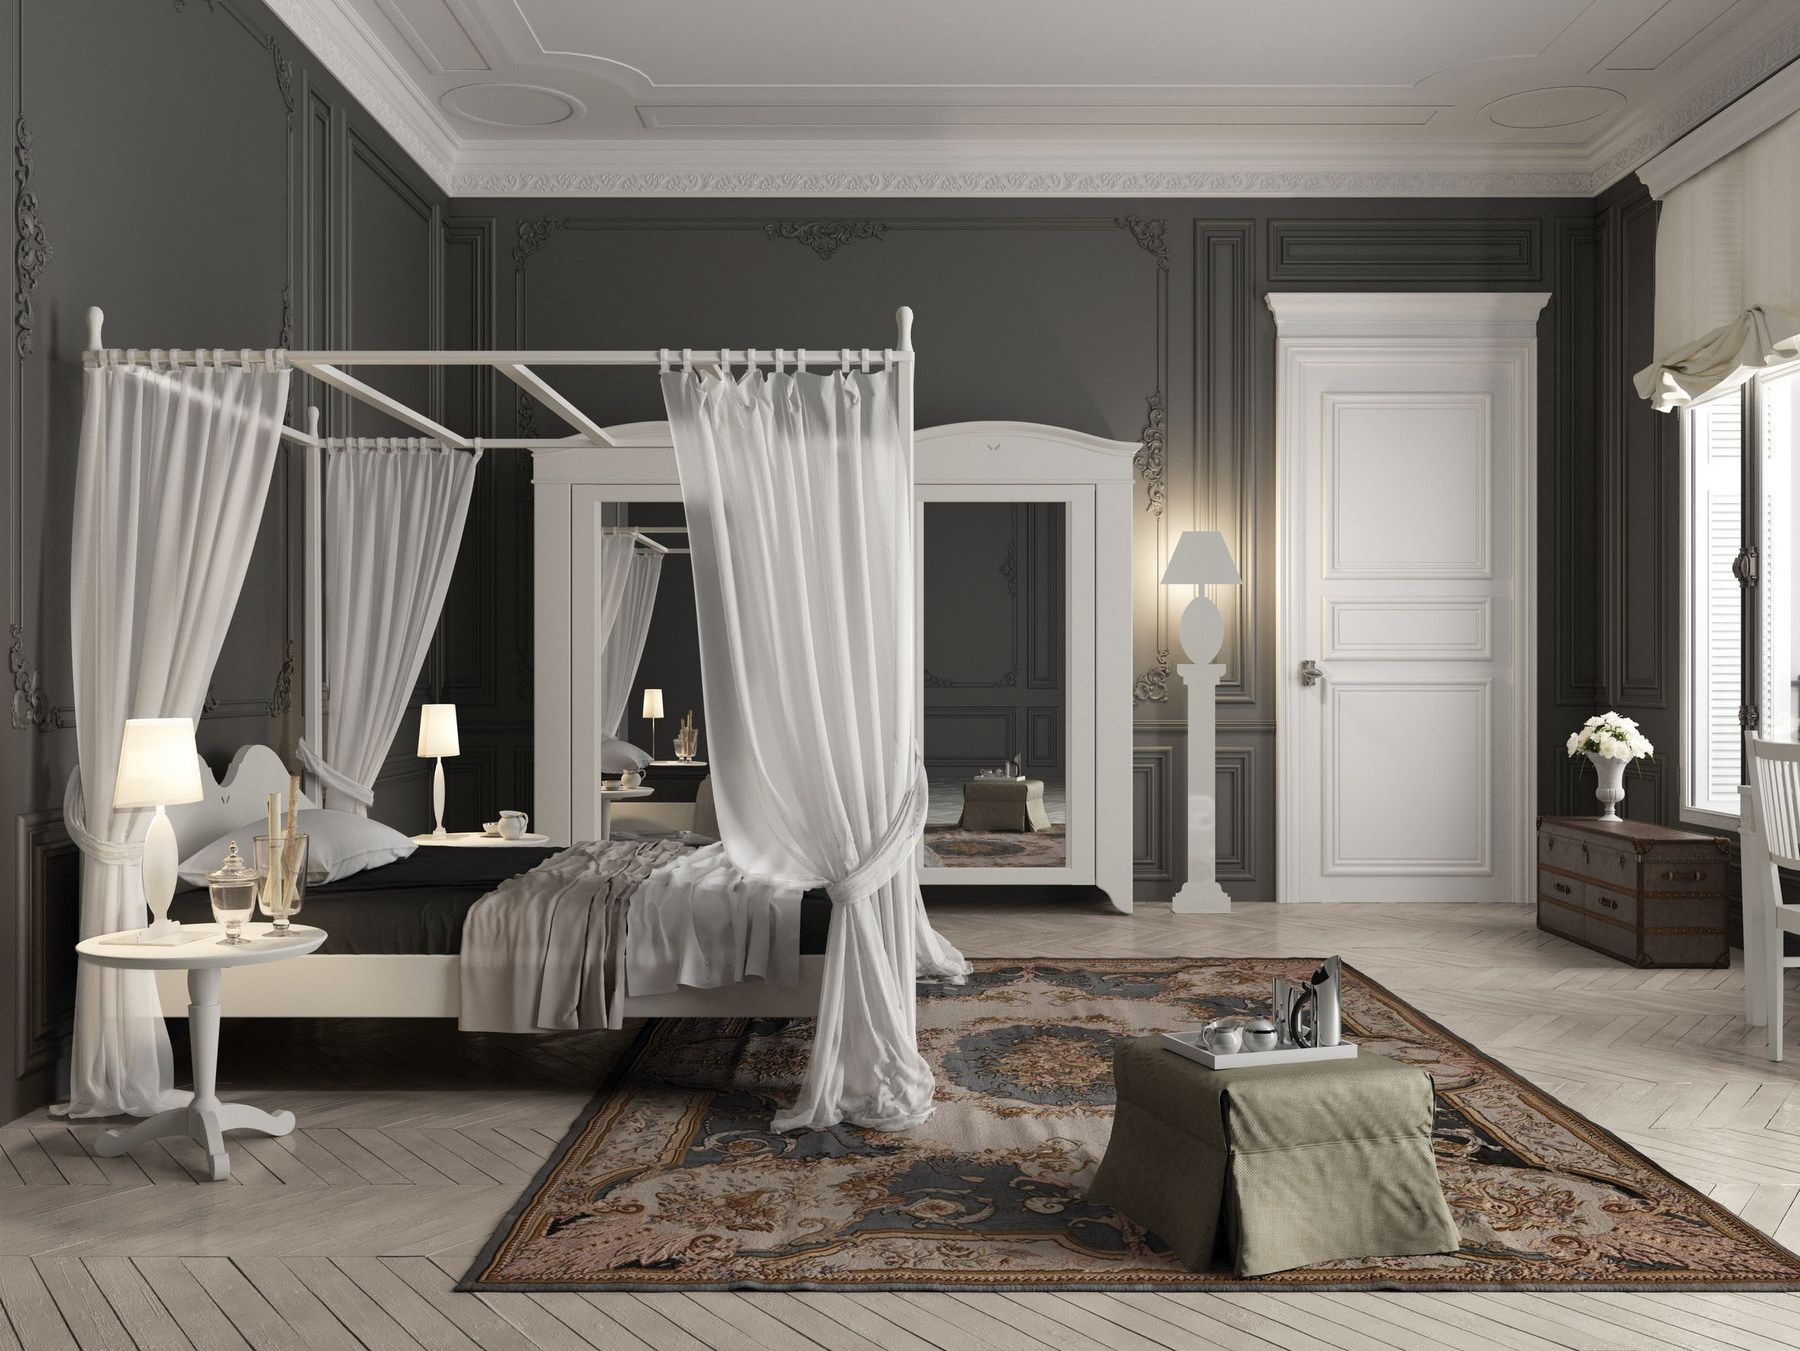 ANSOUIS Full size bed by Minacciolo | Beds & Rooms | Pinterest ...